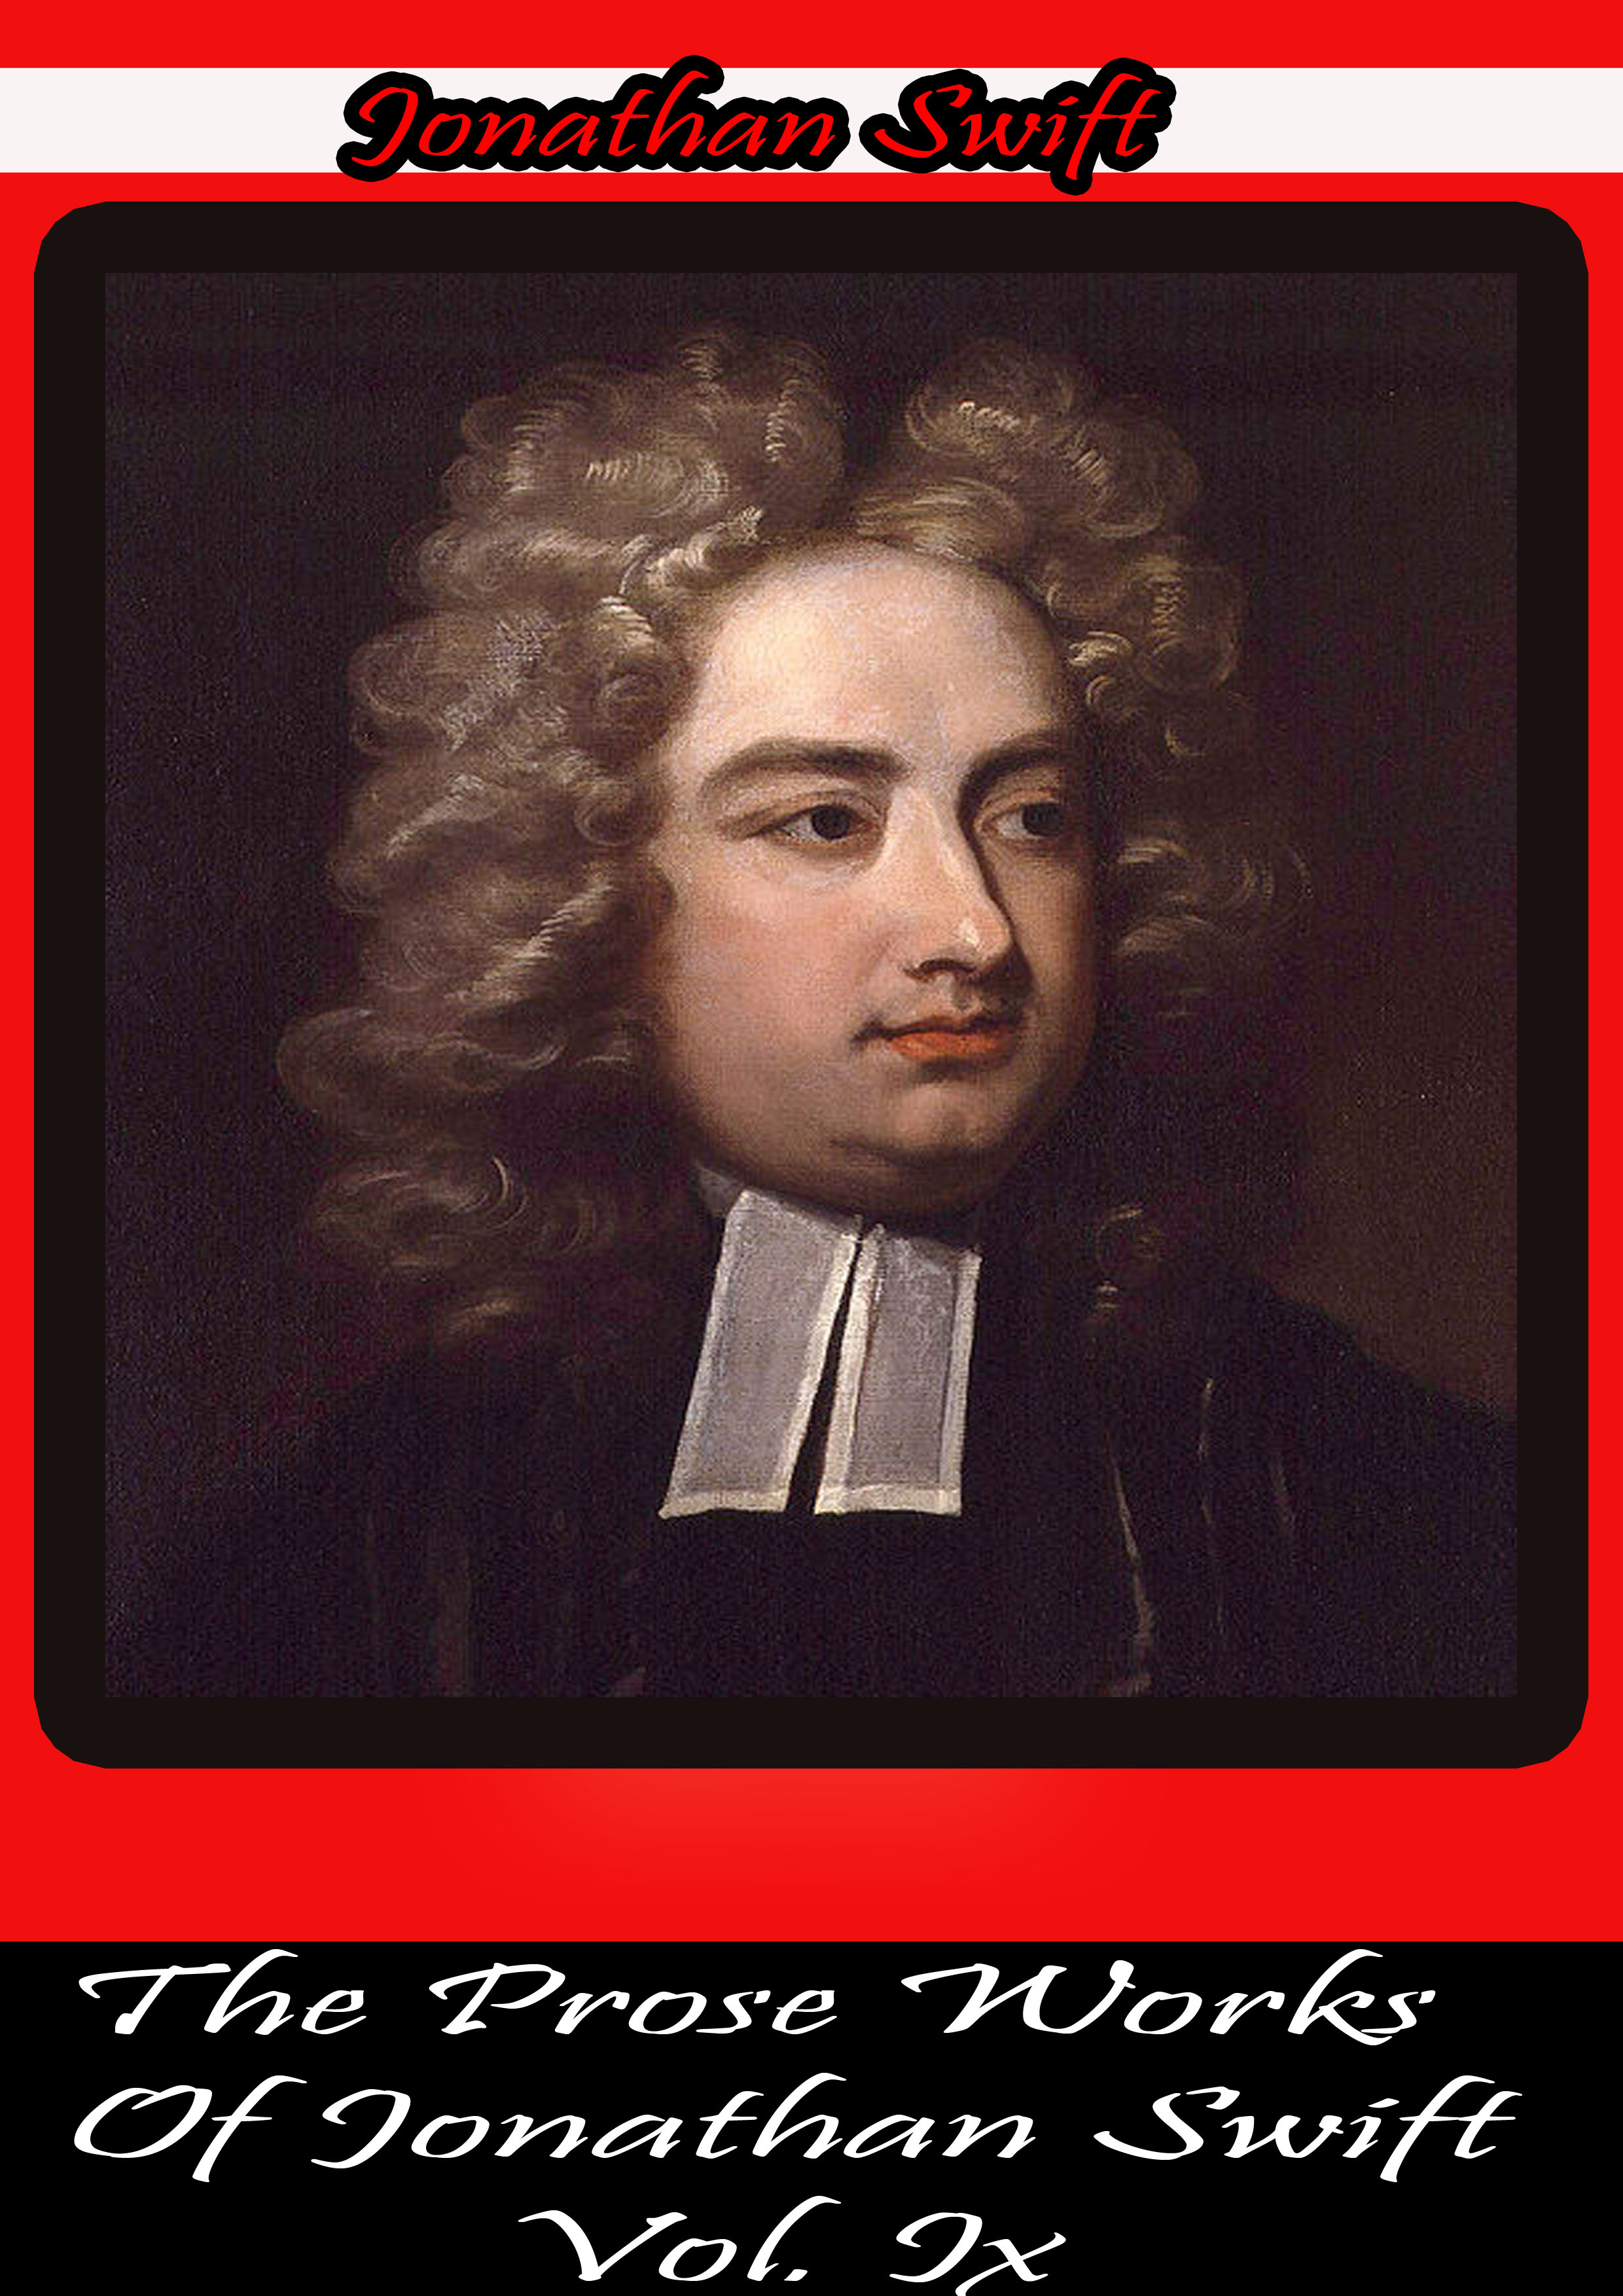 The Prose Works Of Jonathan Swift Vol. Ix